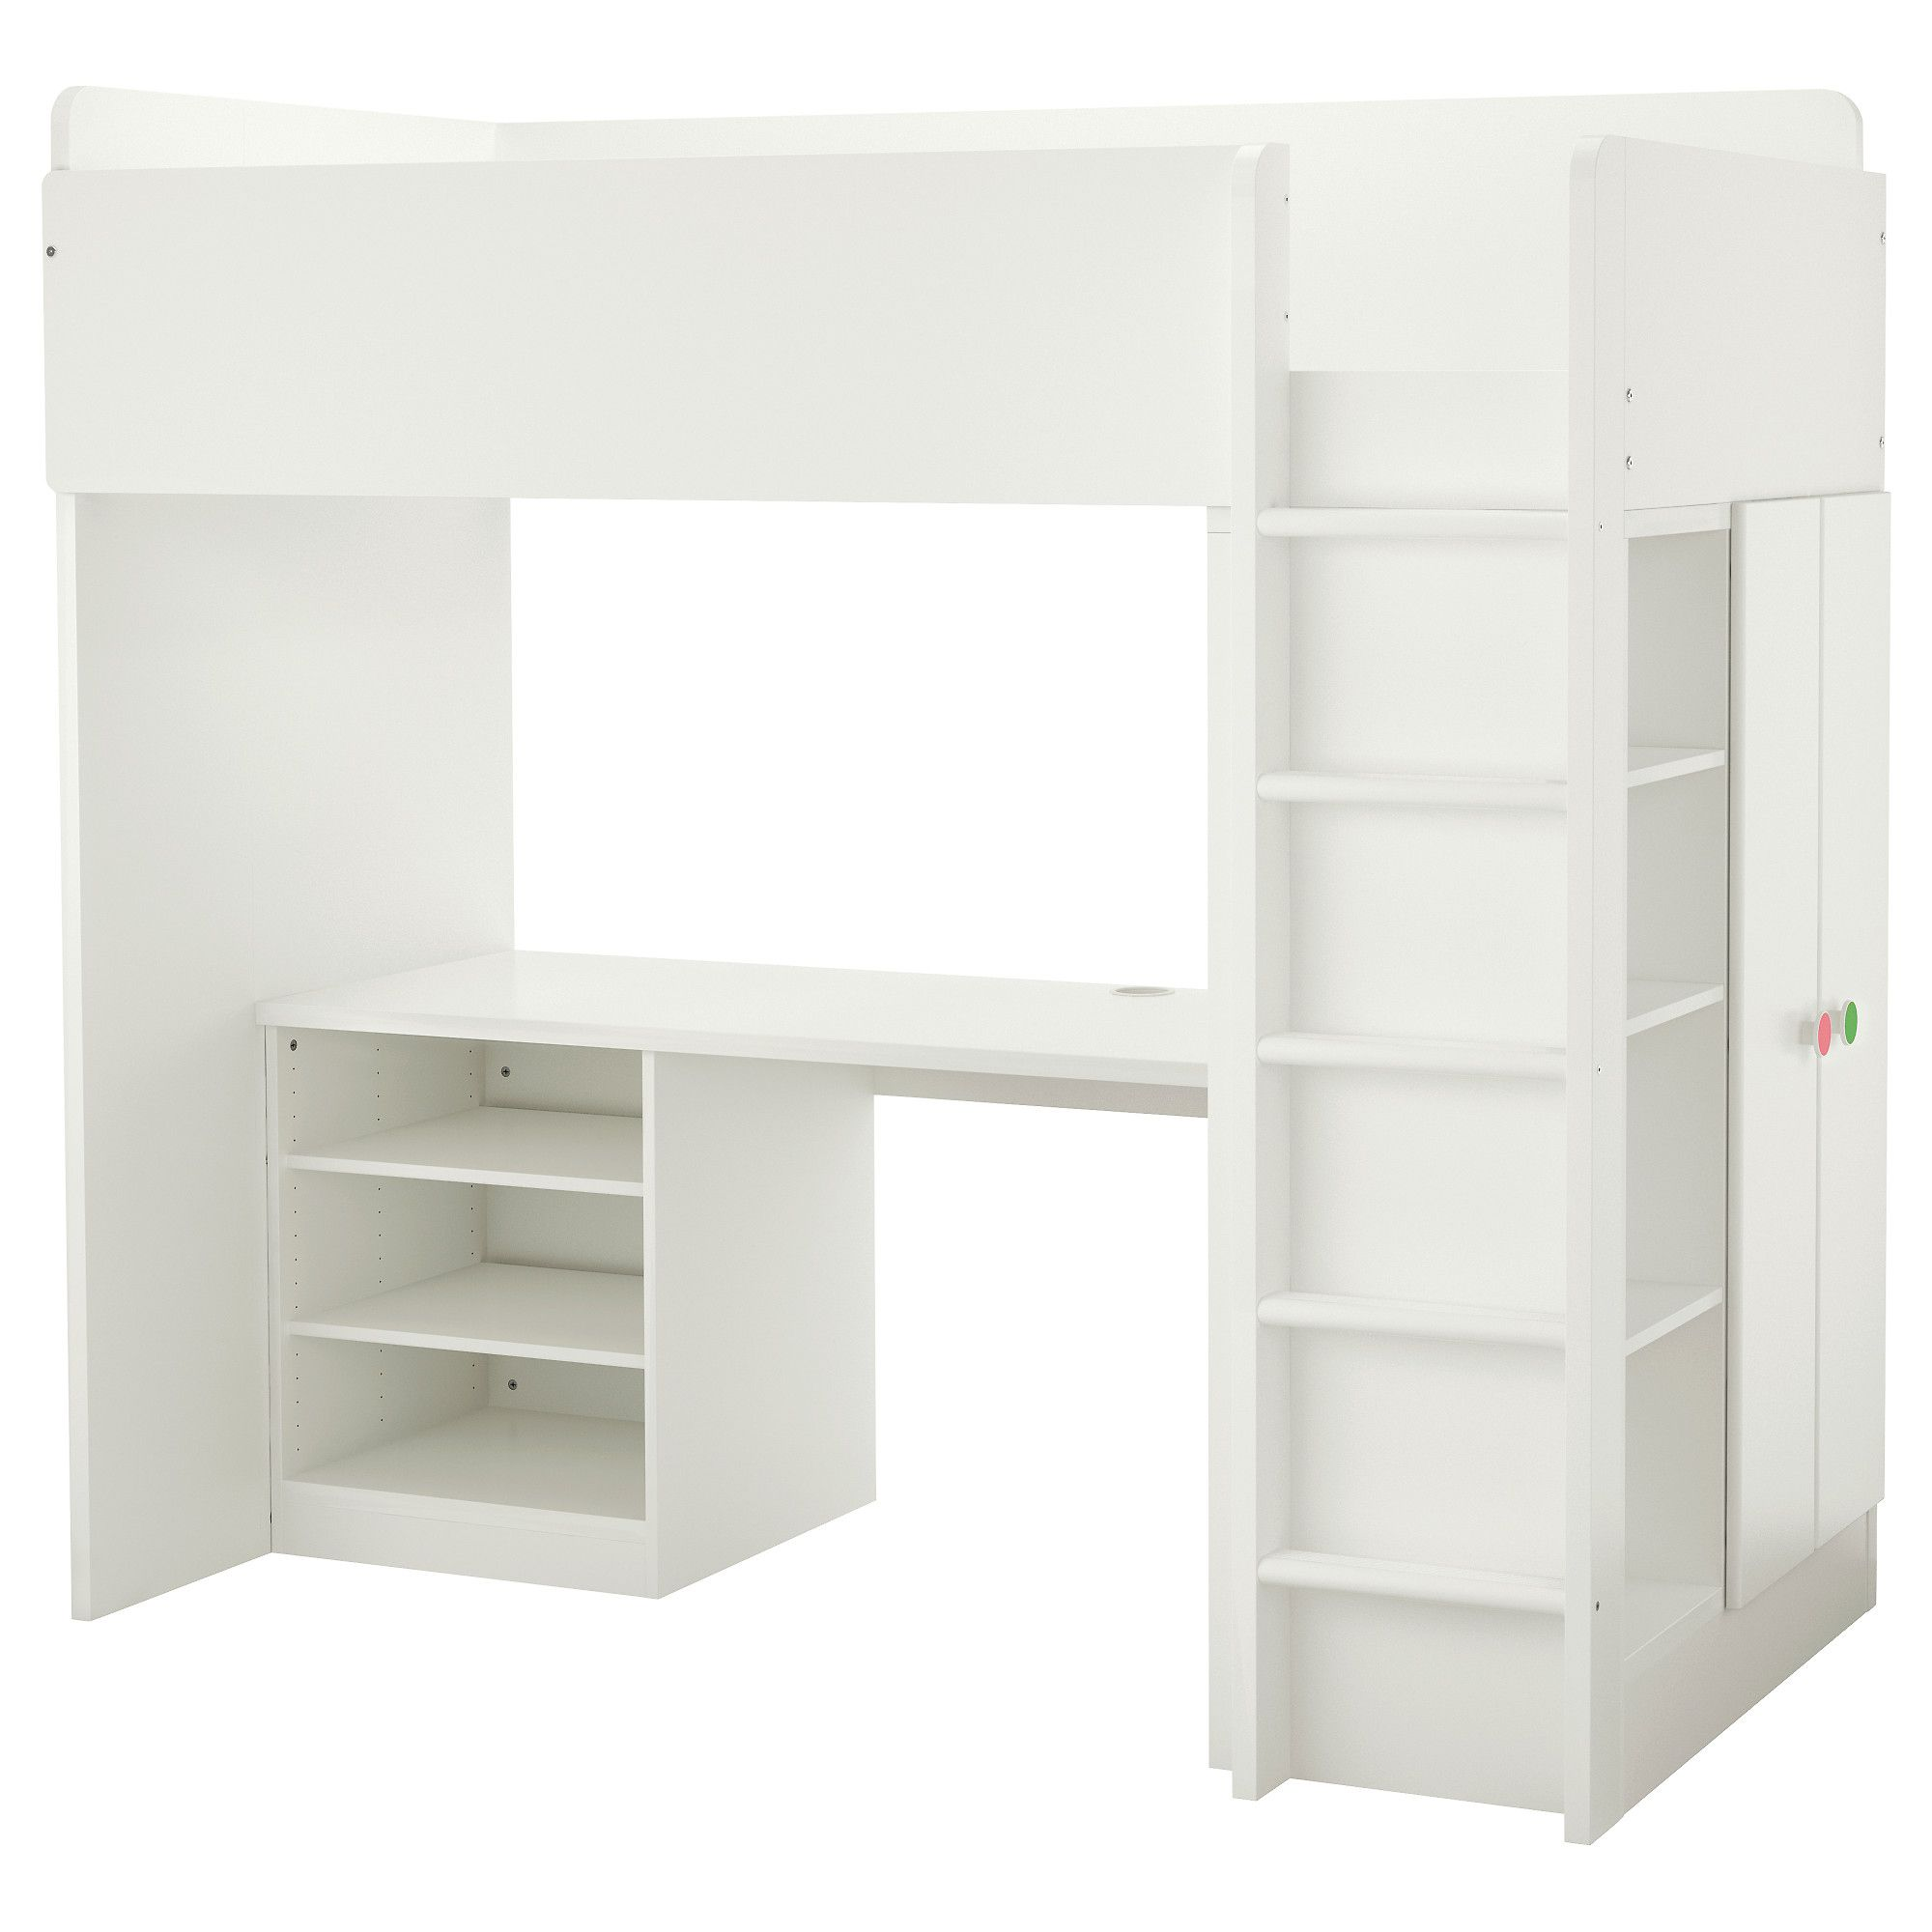 Pin By Annora On Home Interior Loft Bed Desk White